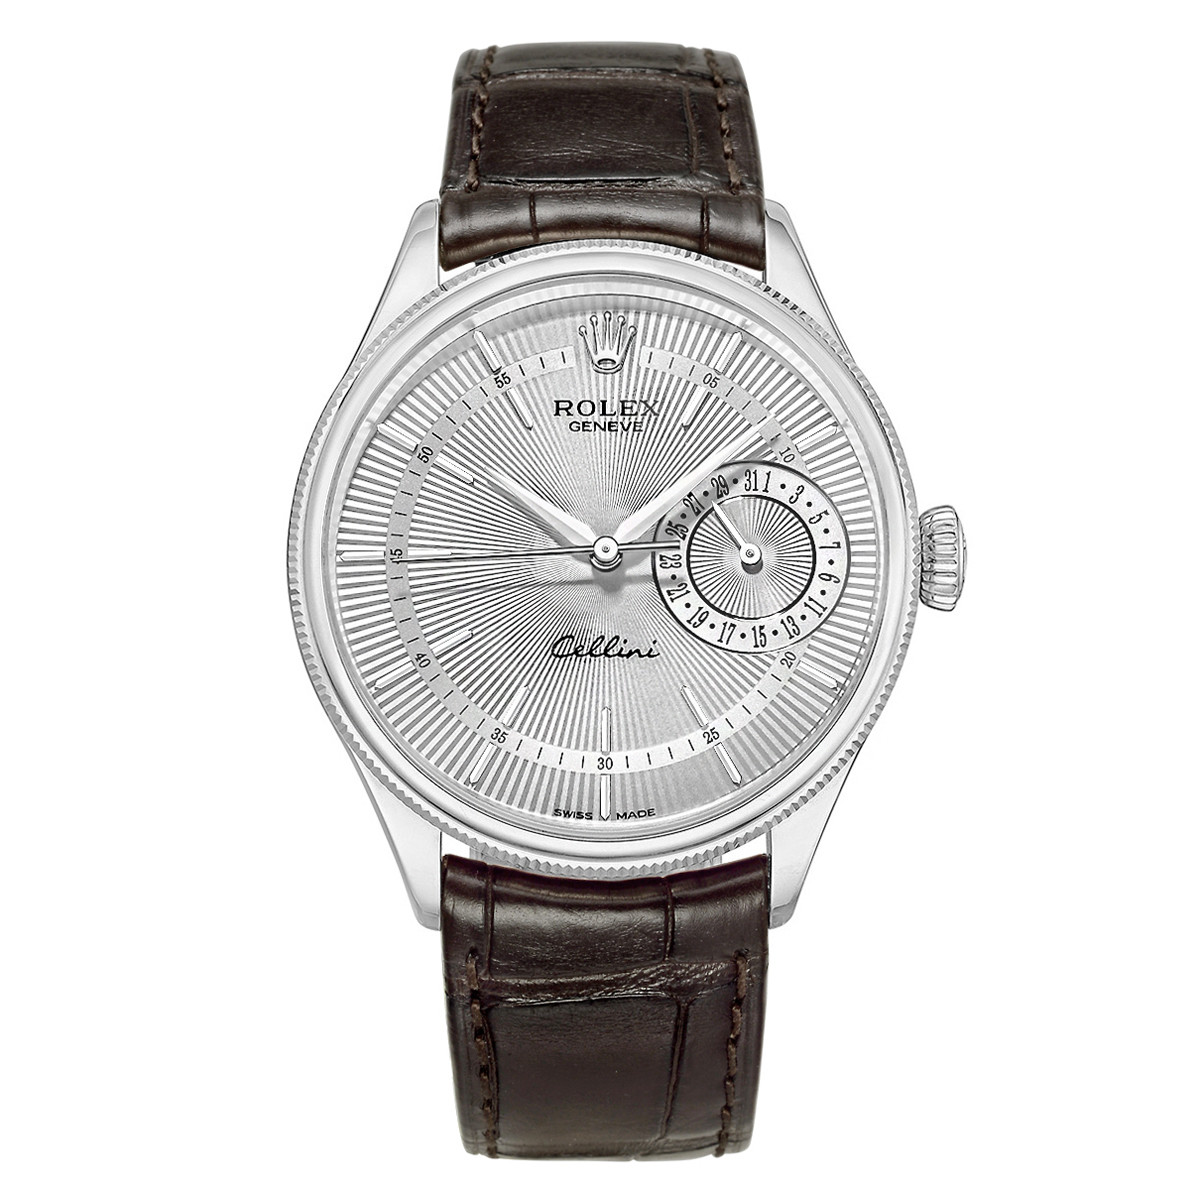 Cellini Date White Gold (50519)